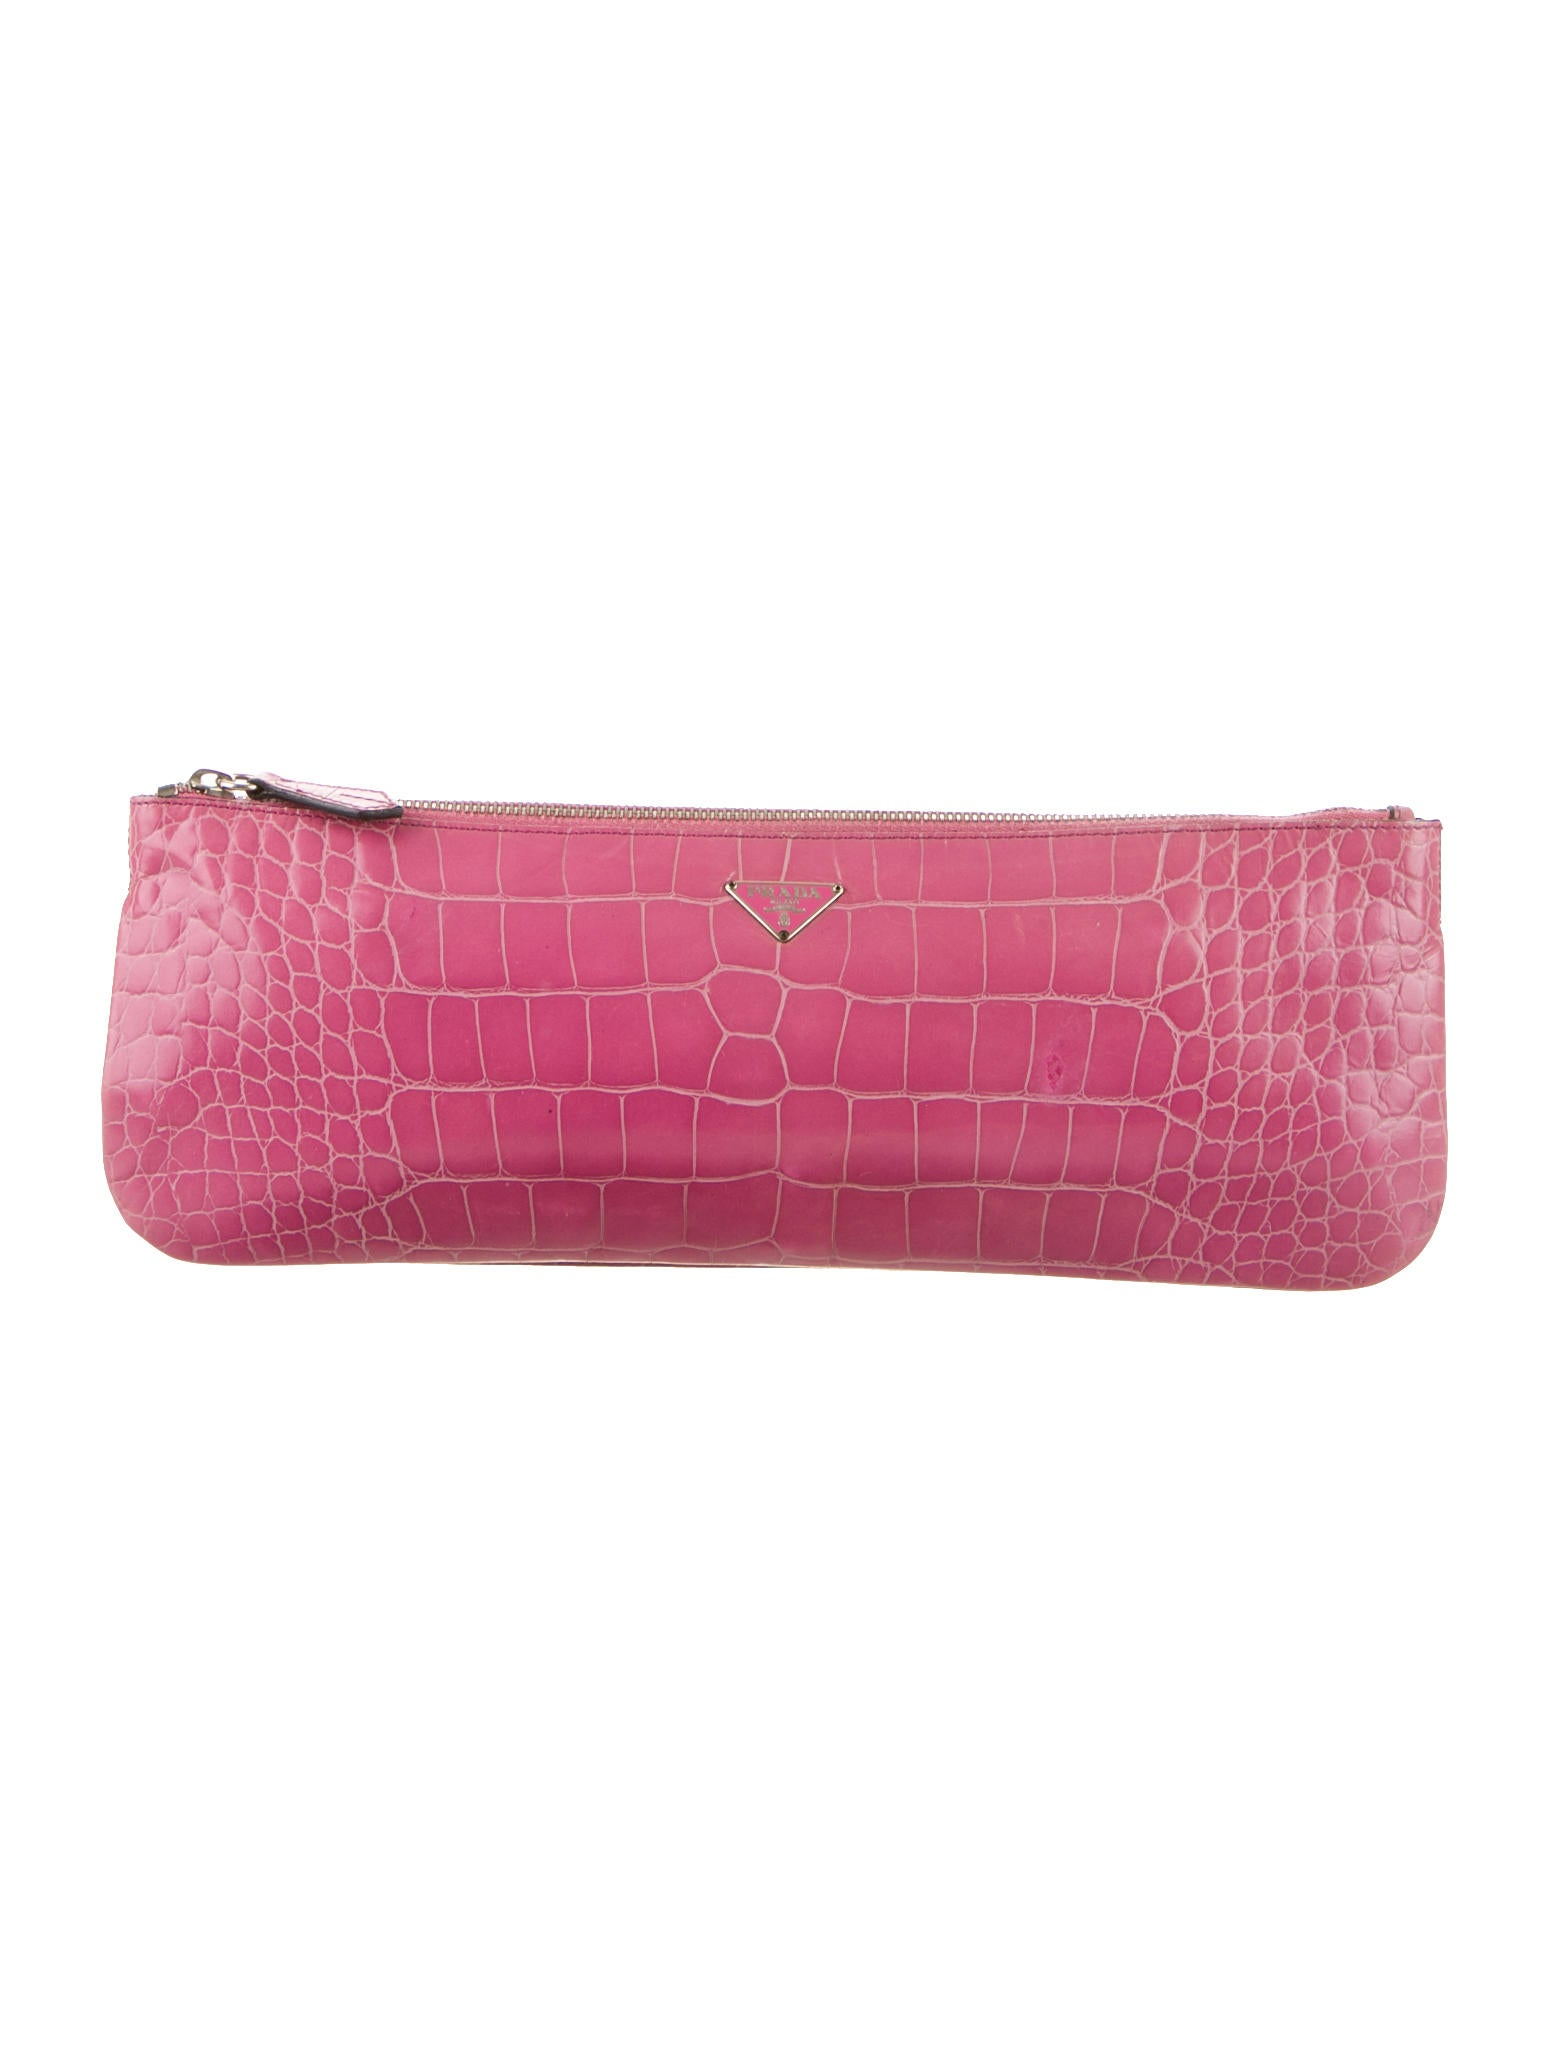 prada purces - Prada St. Cocco Clutch - Handbags - PRA65275 | The RealReal